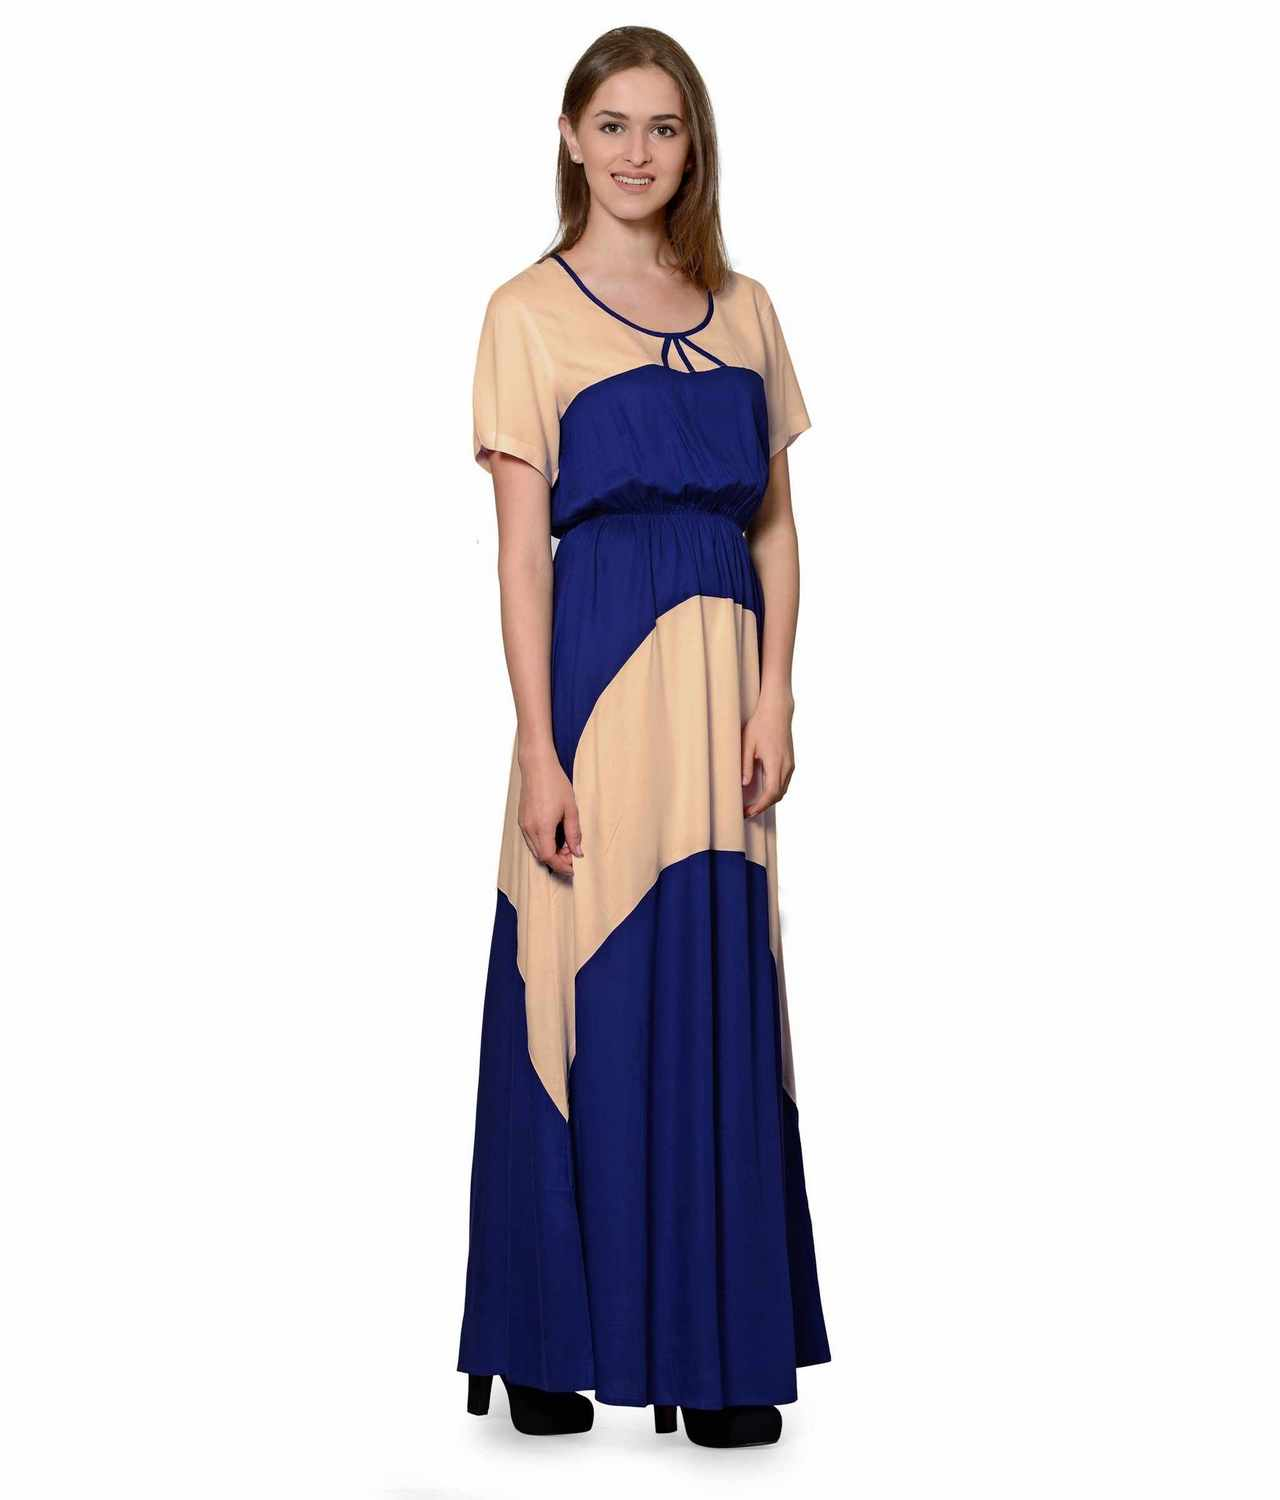 Color Block Slim Fit Maxi Dress Gown in Peach:Royal Blue